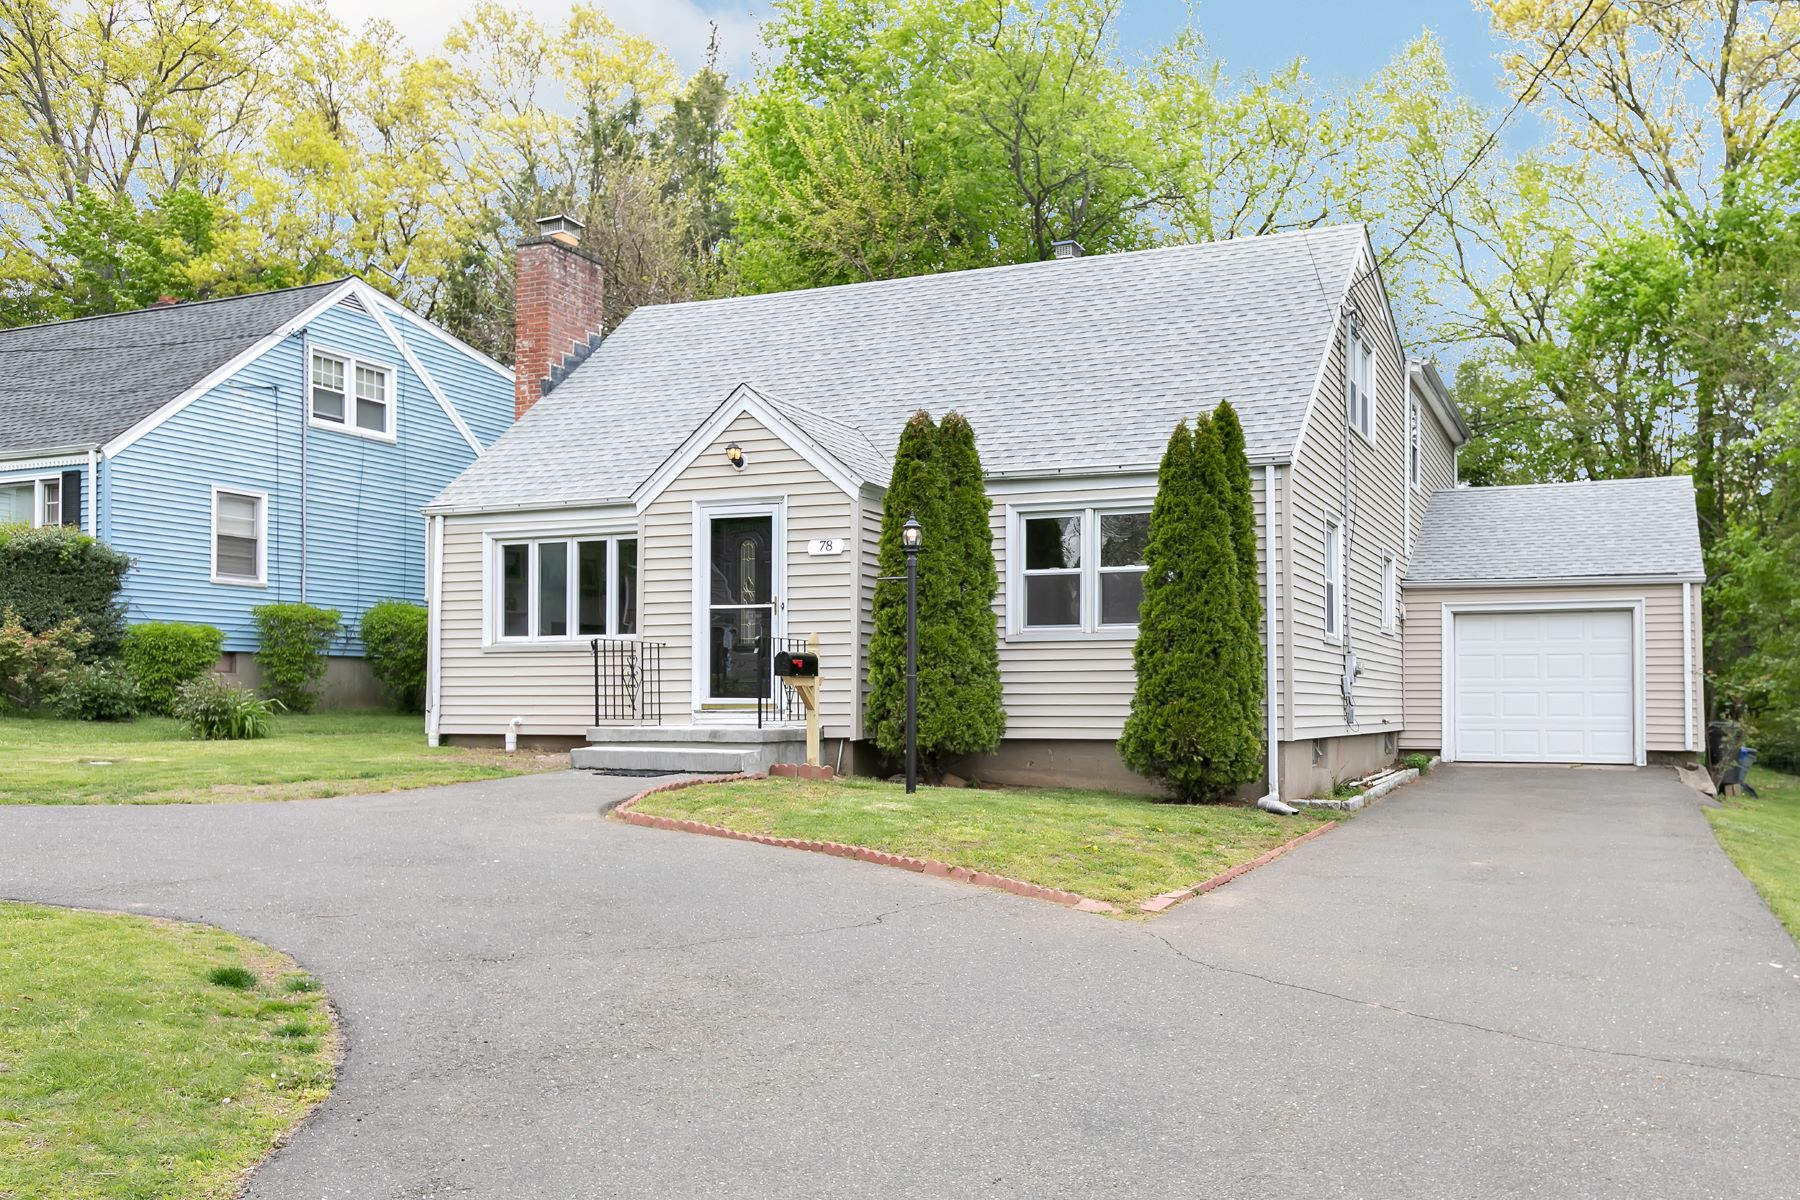 single family homes for Sale at 4 Bedroom Cape Cod Home 78 Anson Street, Stratford, Connecticut 06614 United States